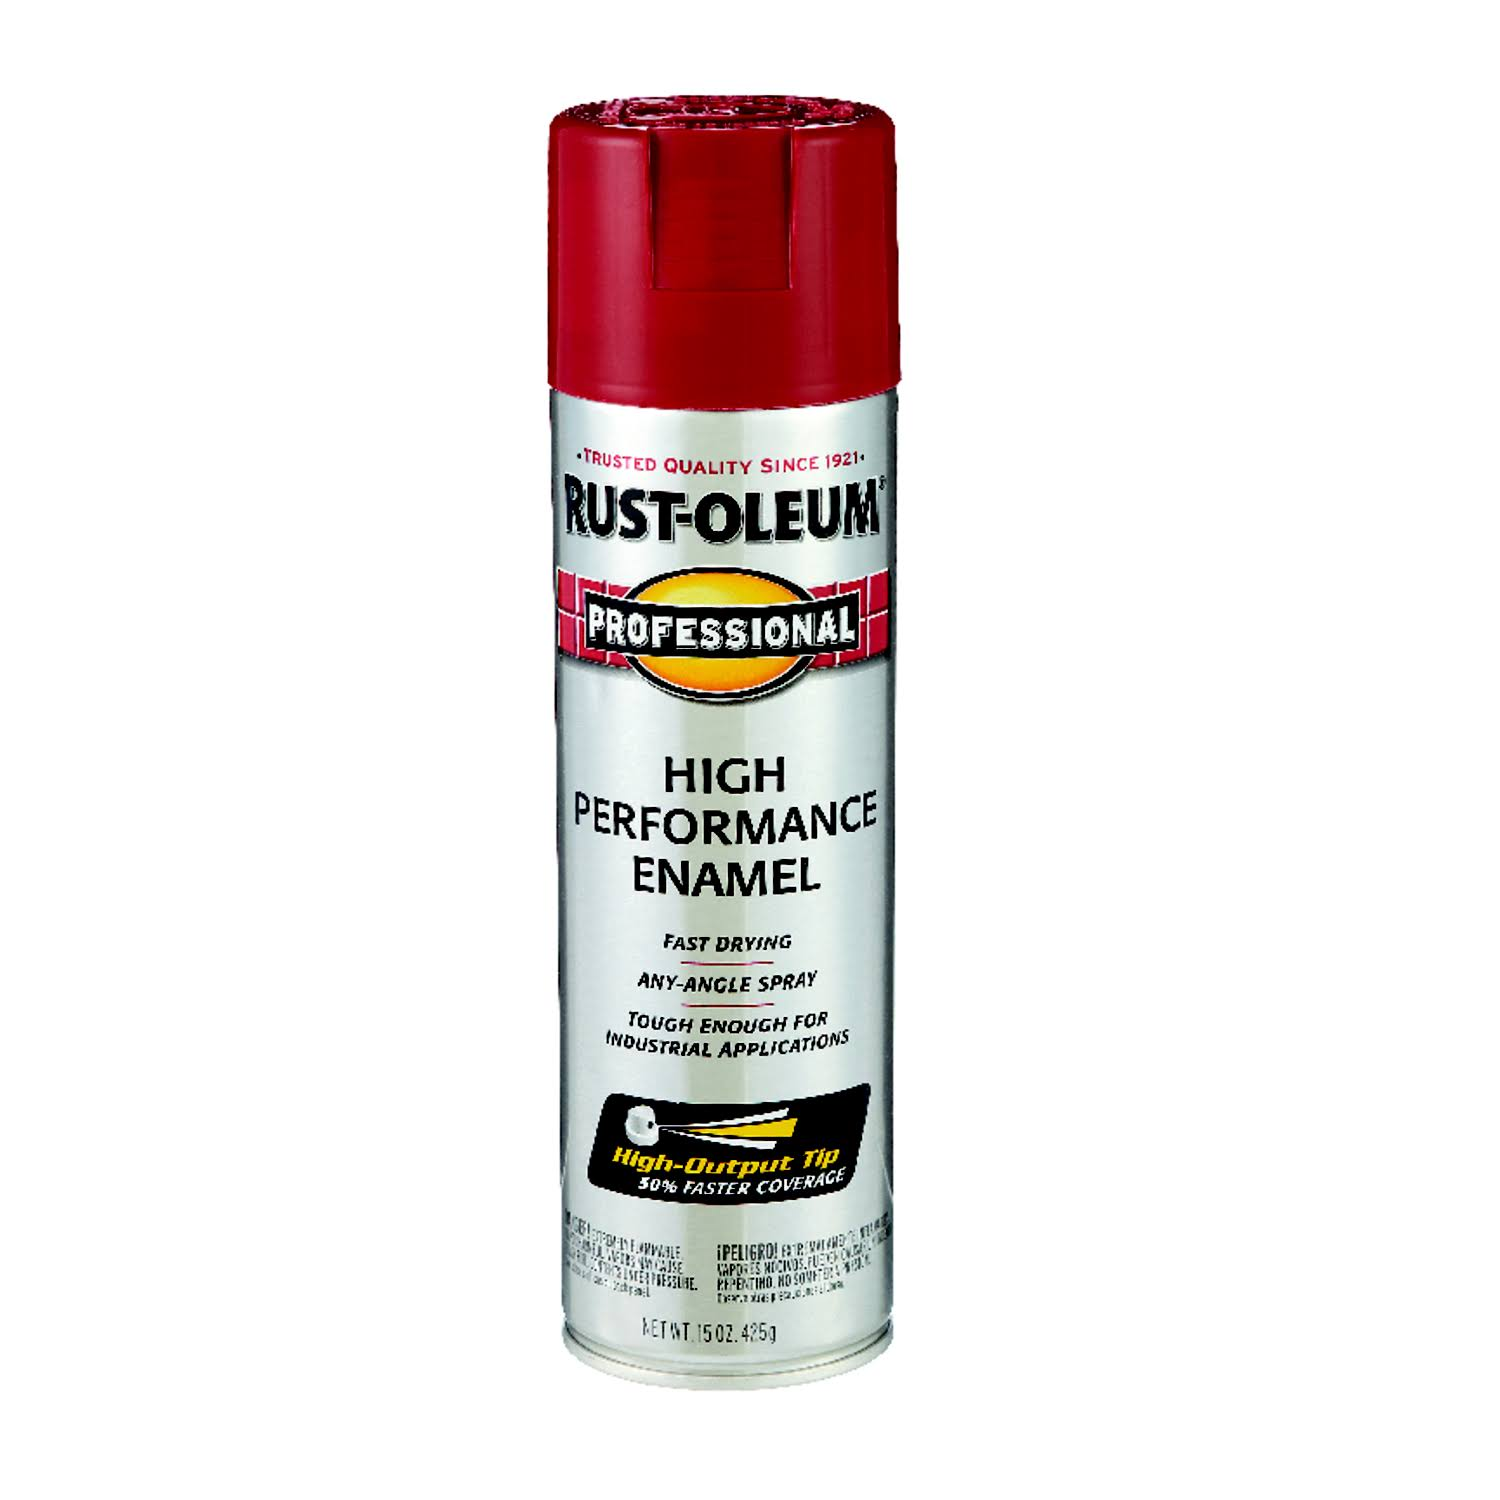 Rust-Oleum 7565838 Professional High Performance Enamel Spray Paint - Regal Red